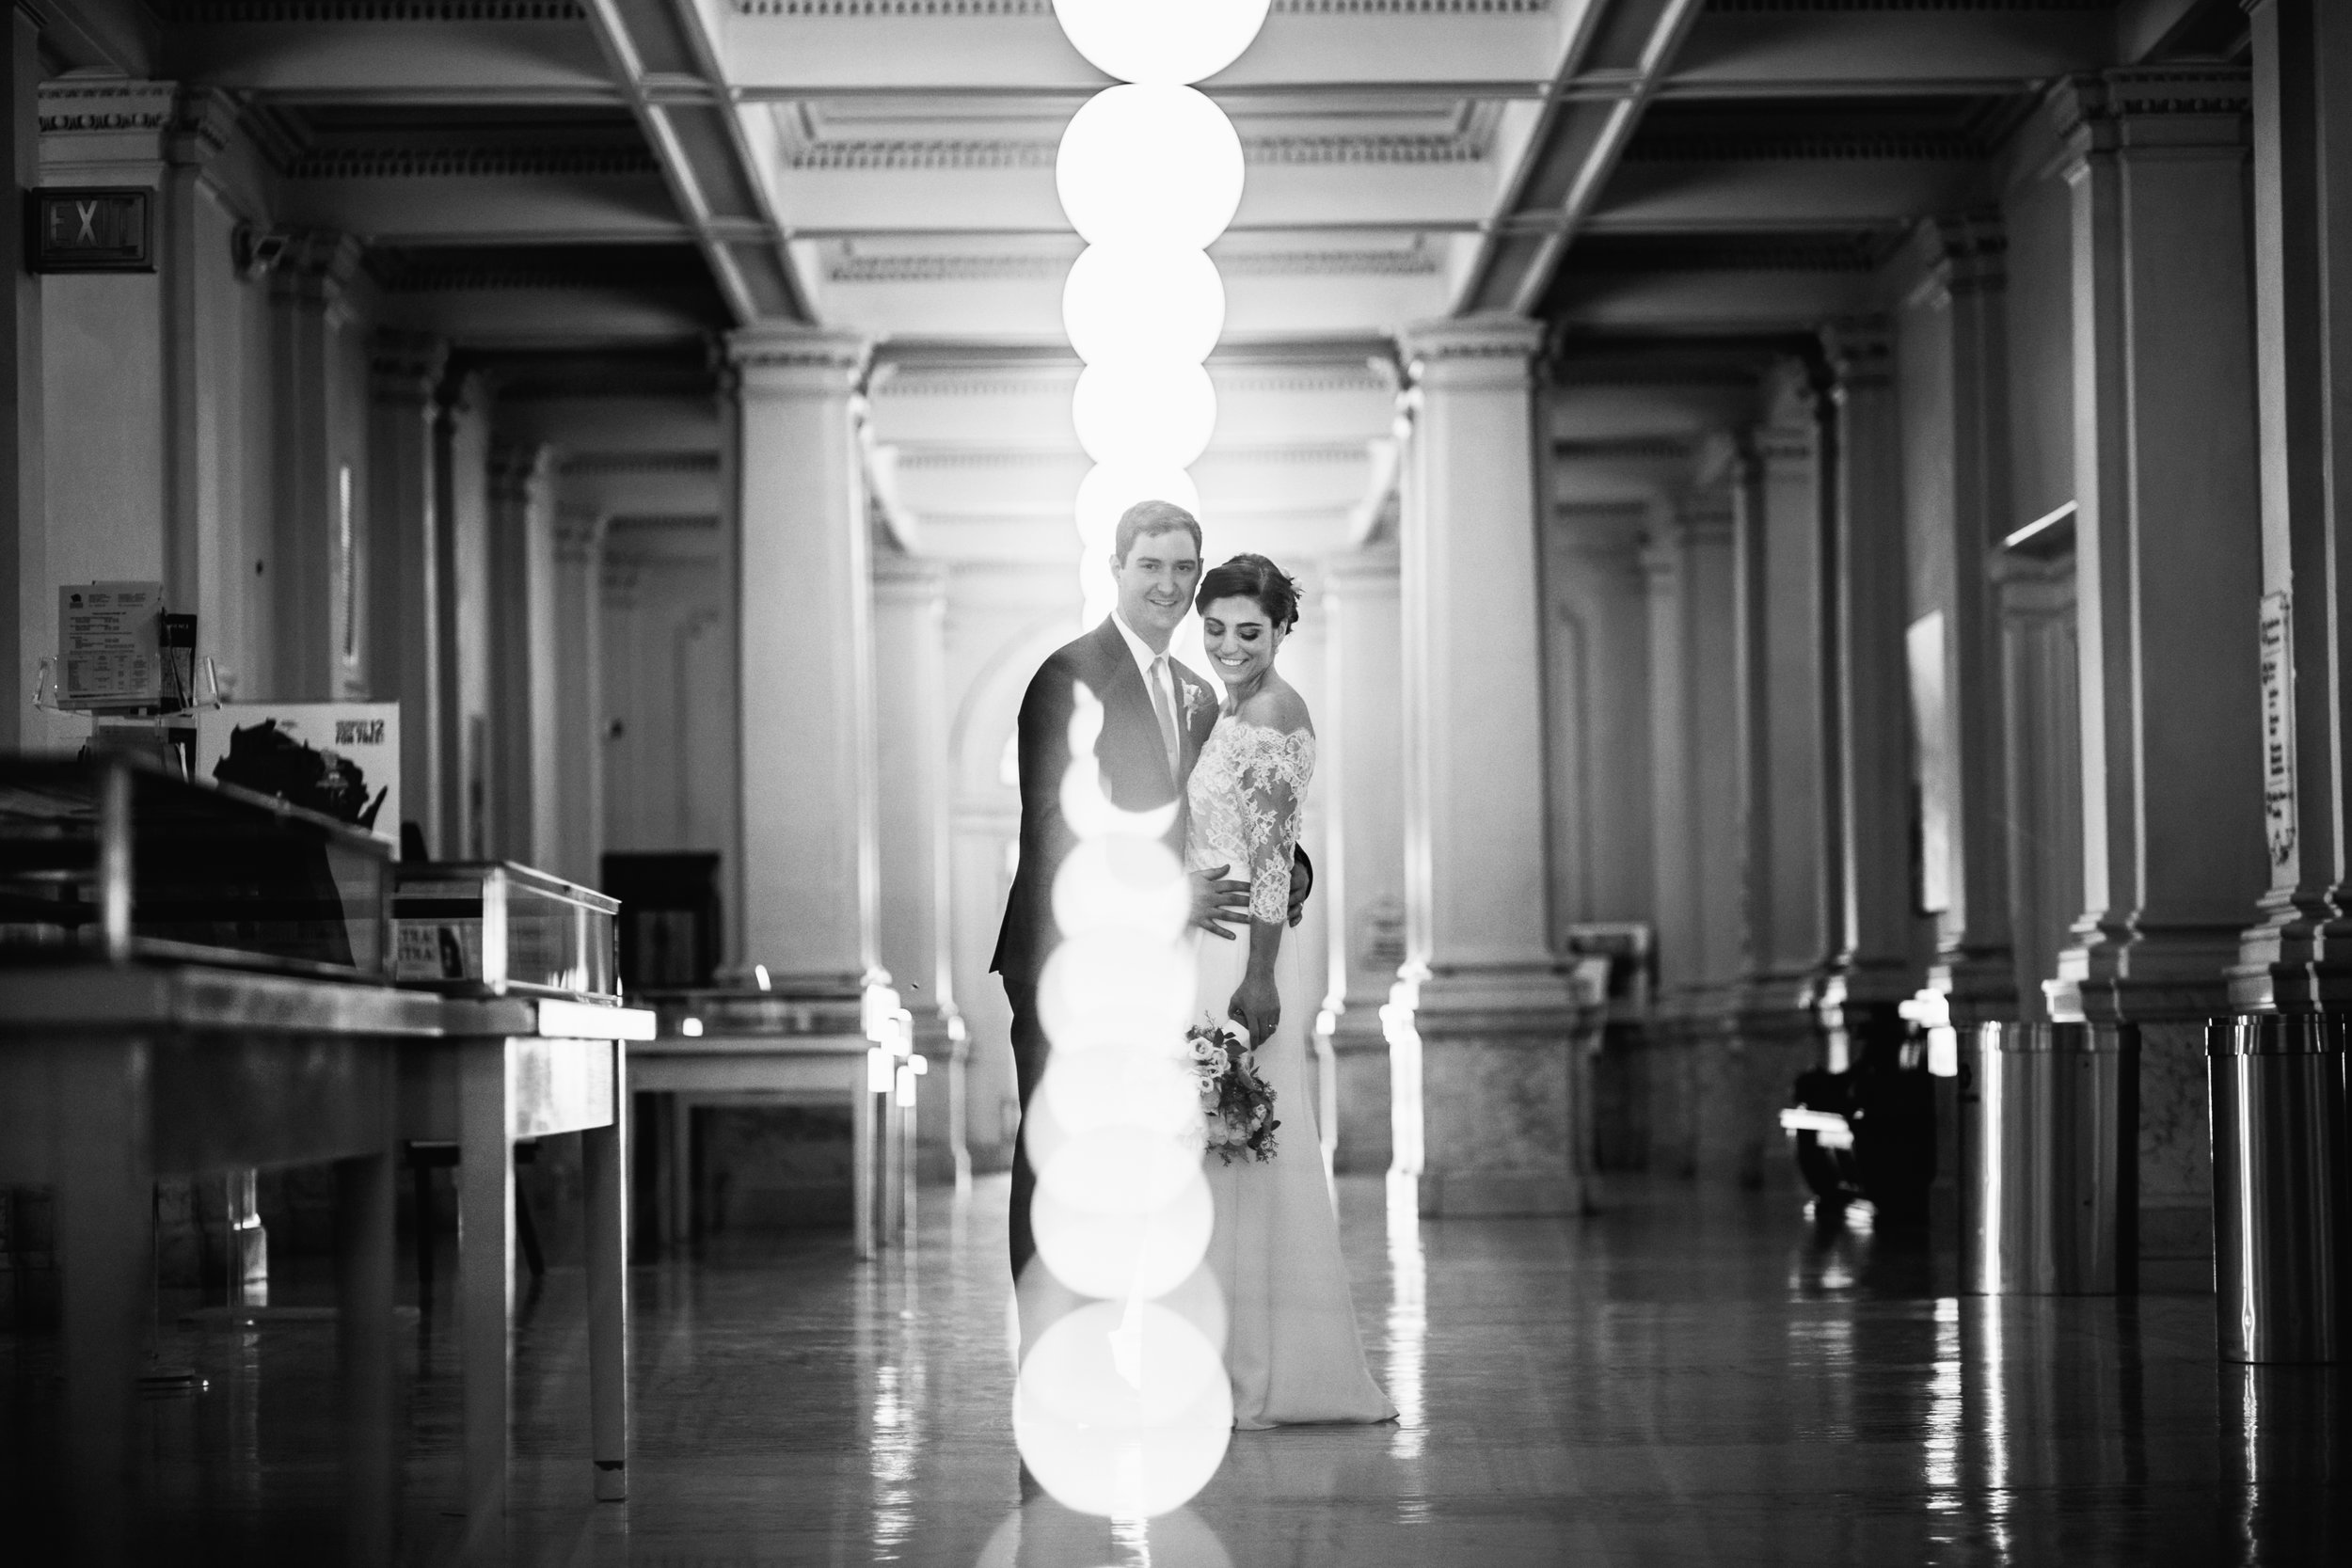 institutes-for-discovery-wedding009.jpg